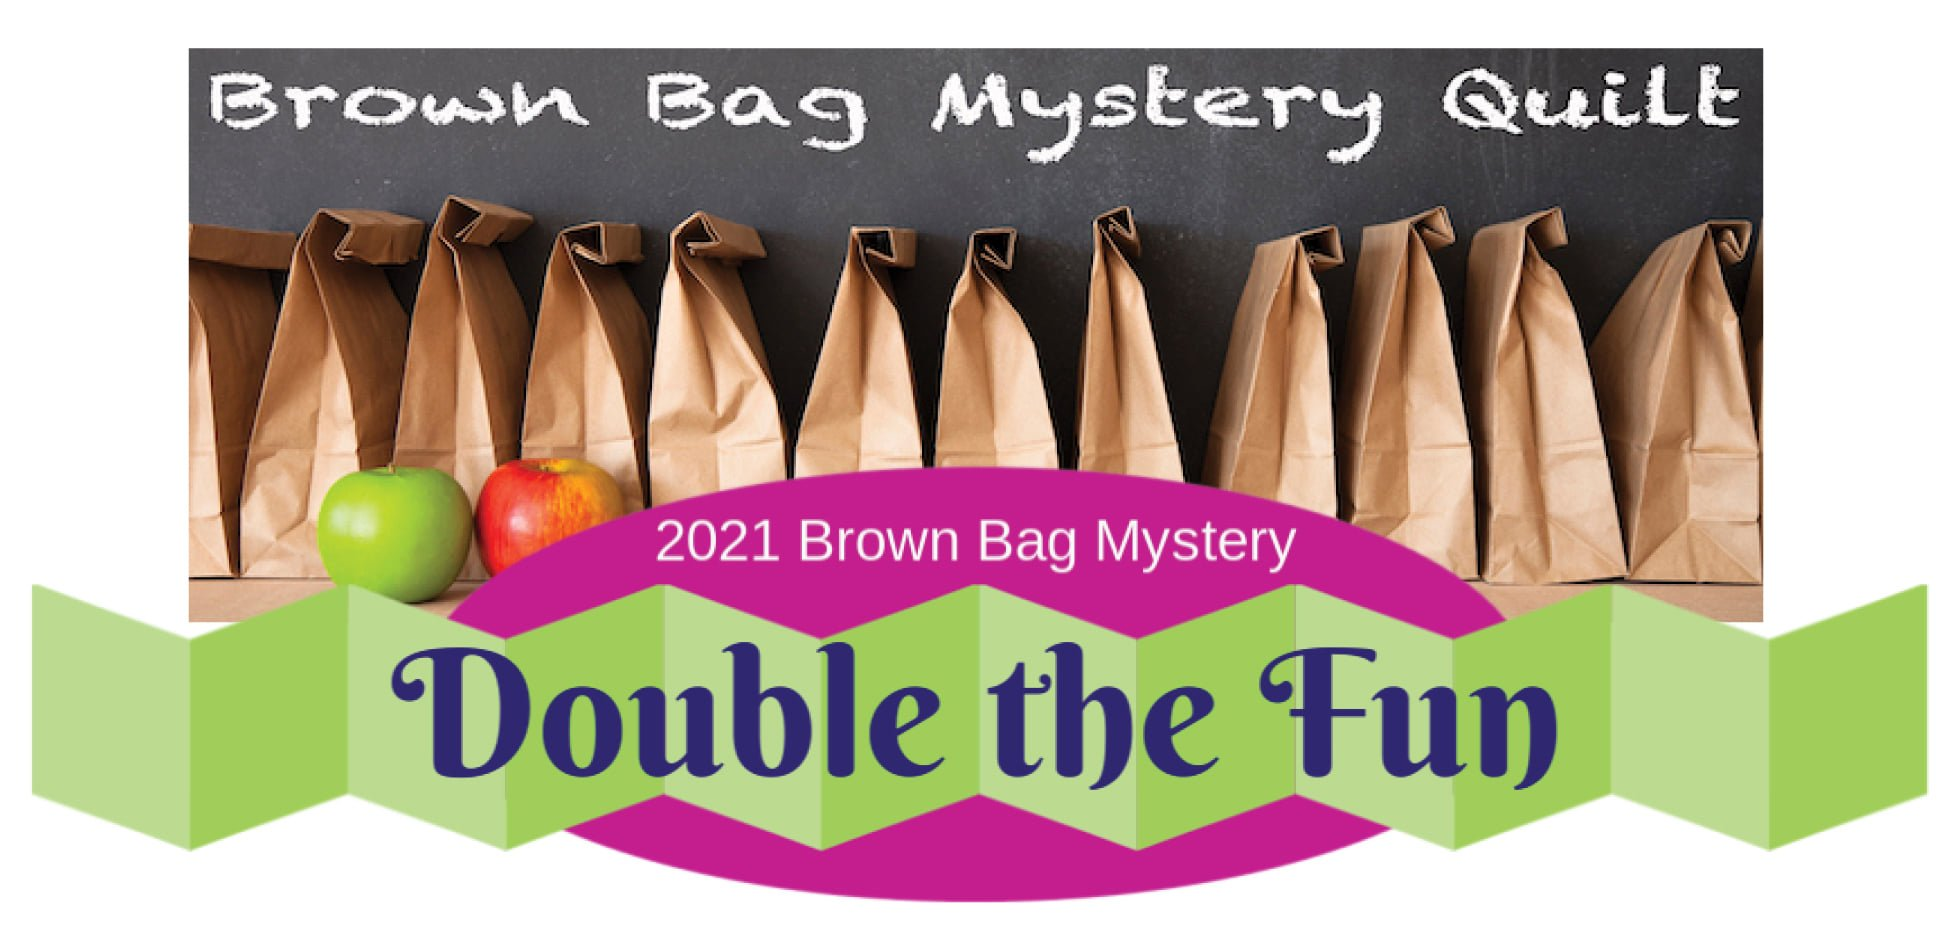 Our 2021 Brown Bag Mystery!